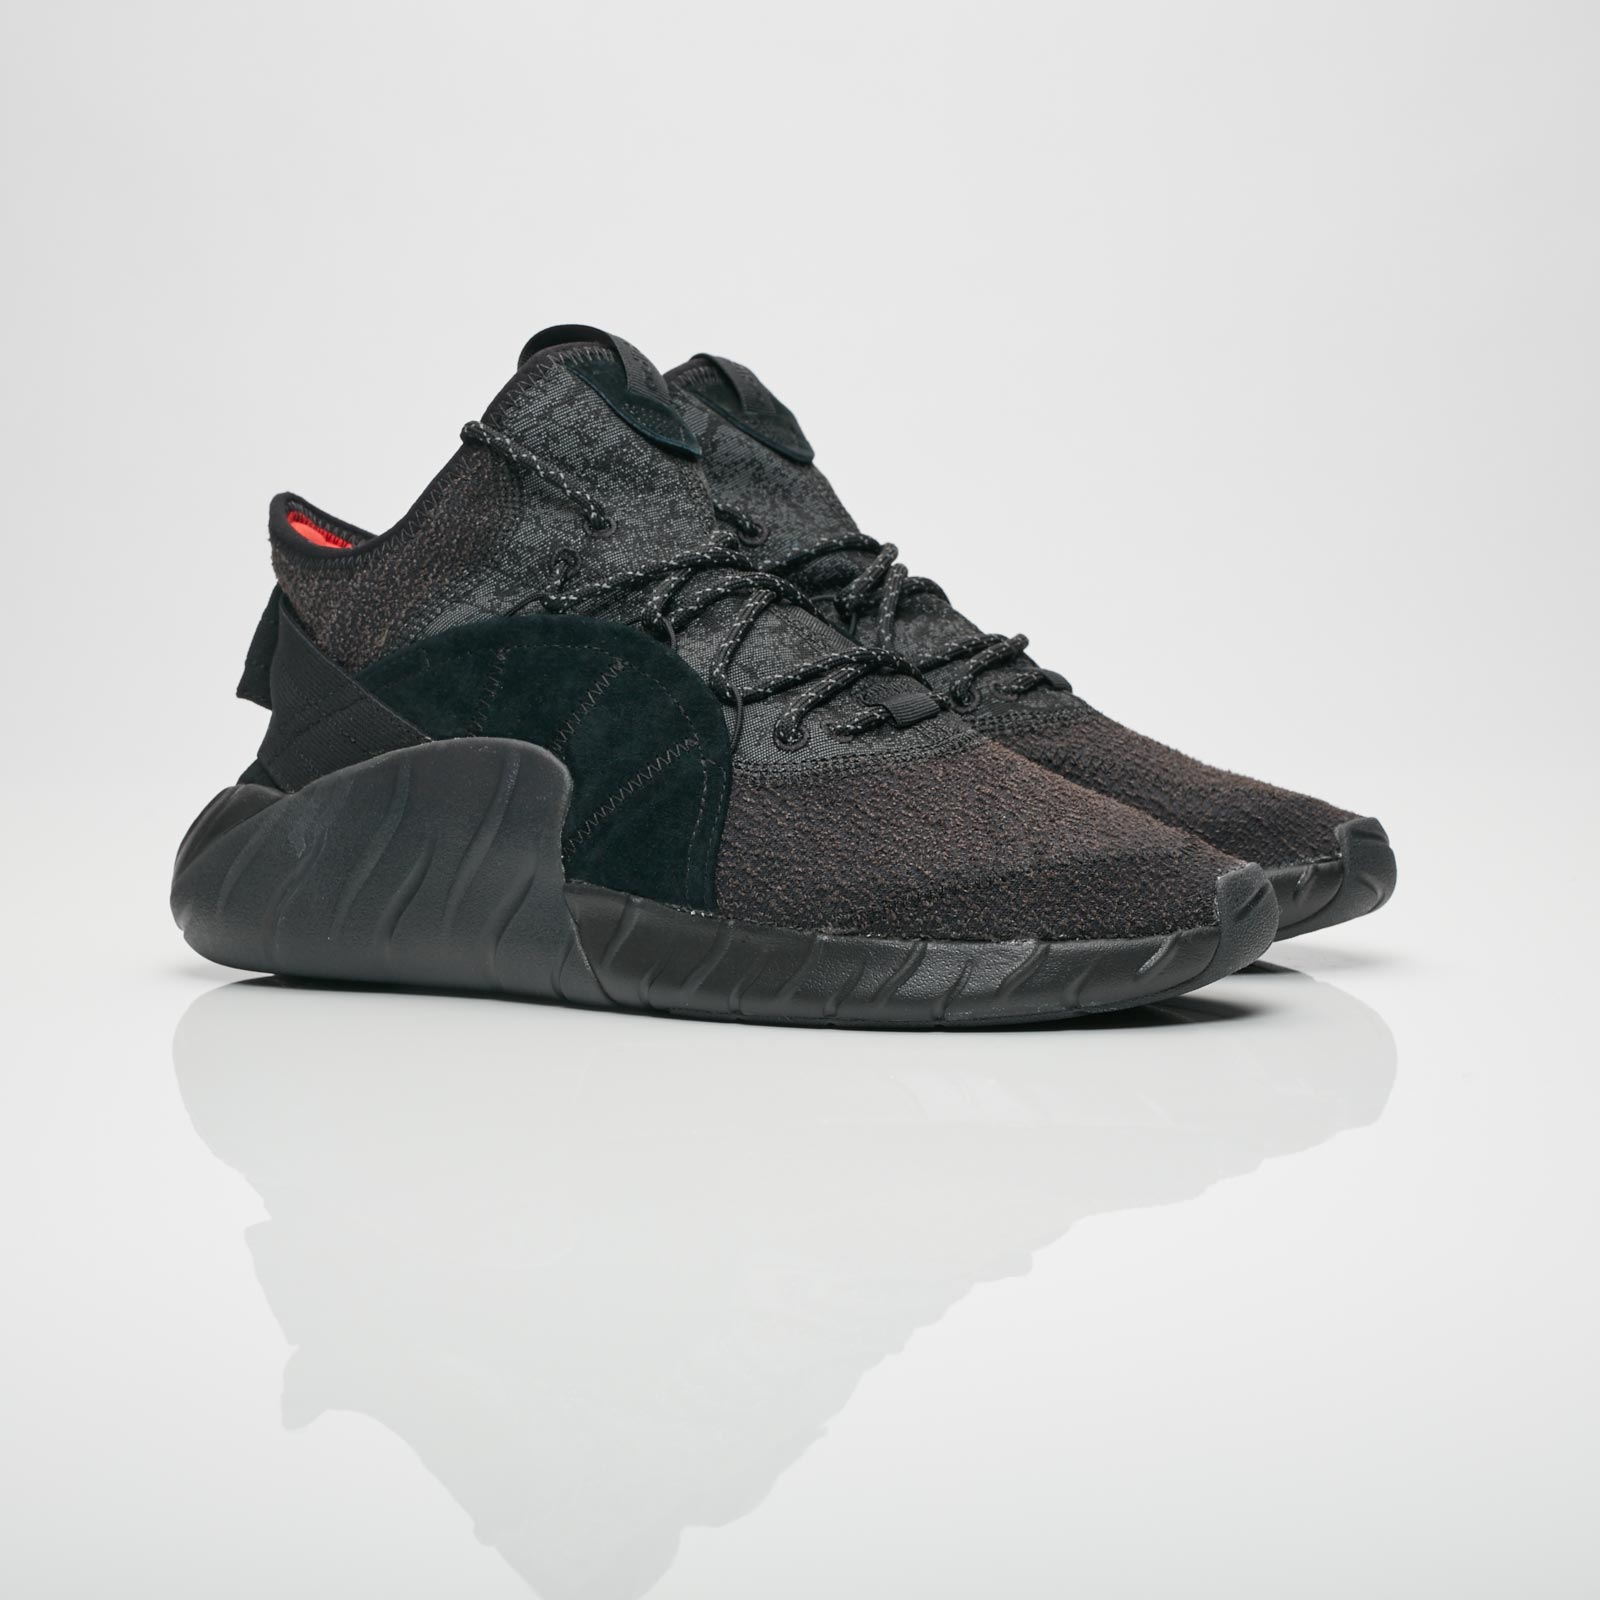 50% off new release performance sportswear adidas Tubular Rise - By3557 - Sneakersnstuff I Sneakers ...